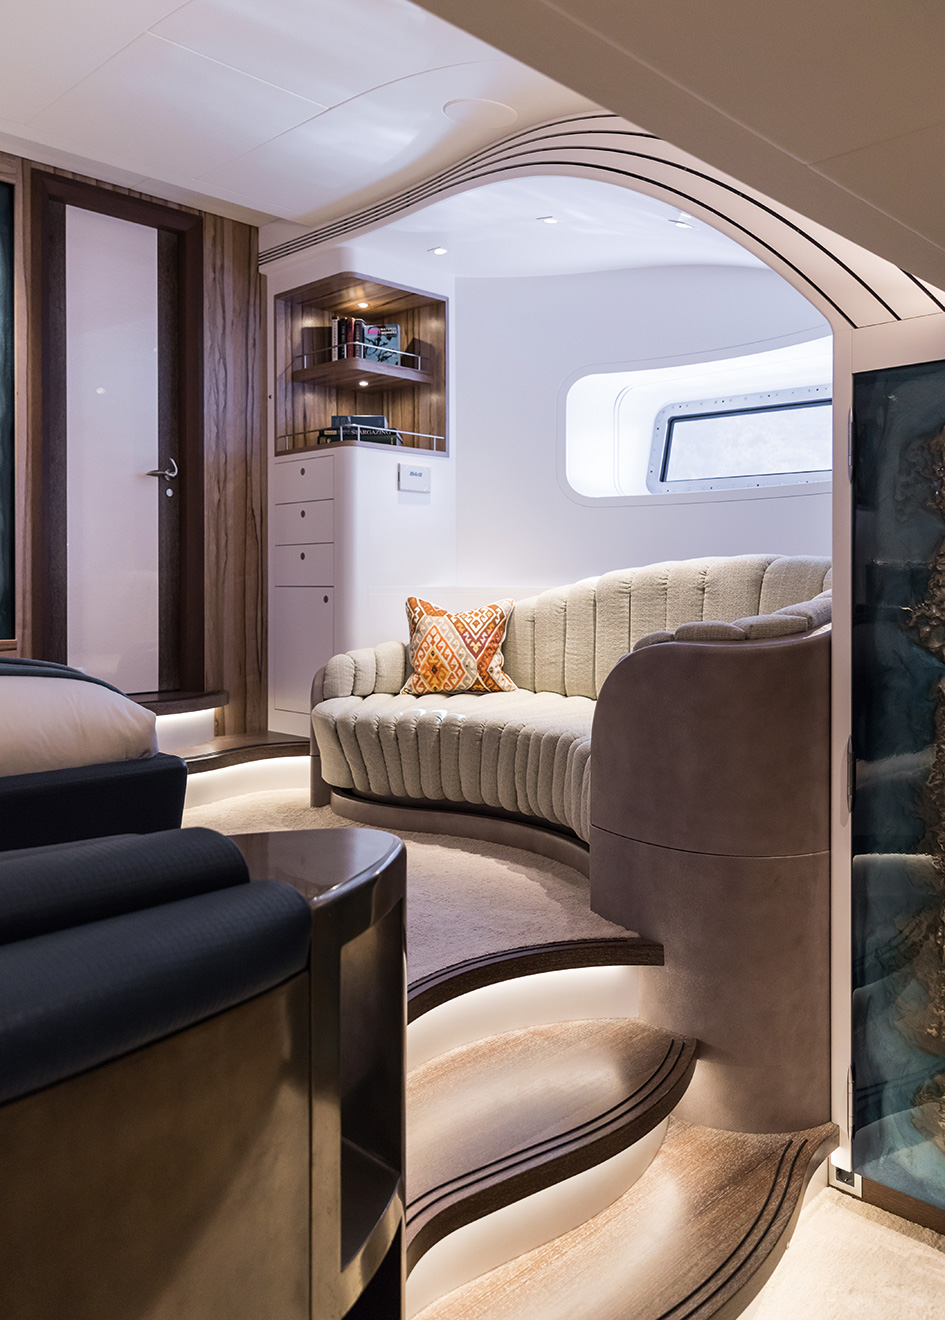 owners-suite-detail-on-the-royal-huisman-sailing-yacht-ngoni-credit-jeff-brown-breed-media